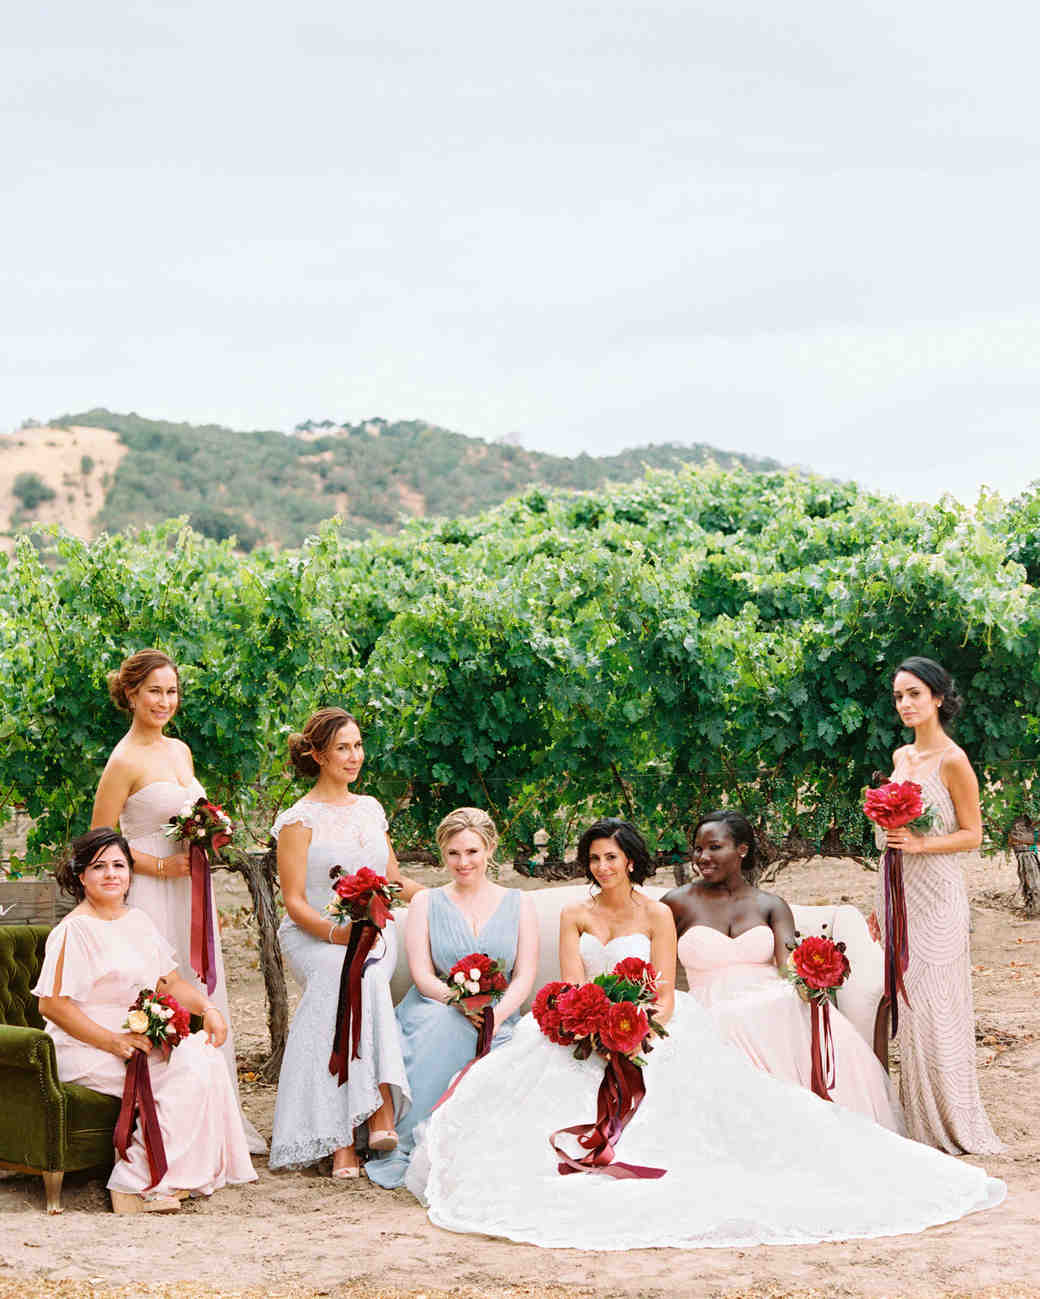 Mismatched Light-Colored Bridesmaid Dresses